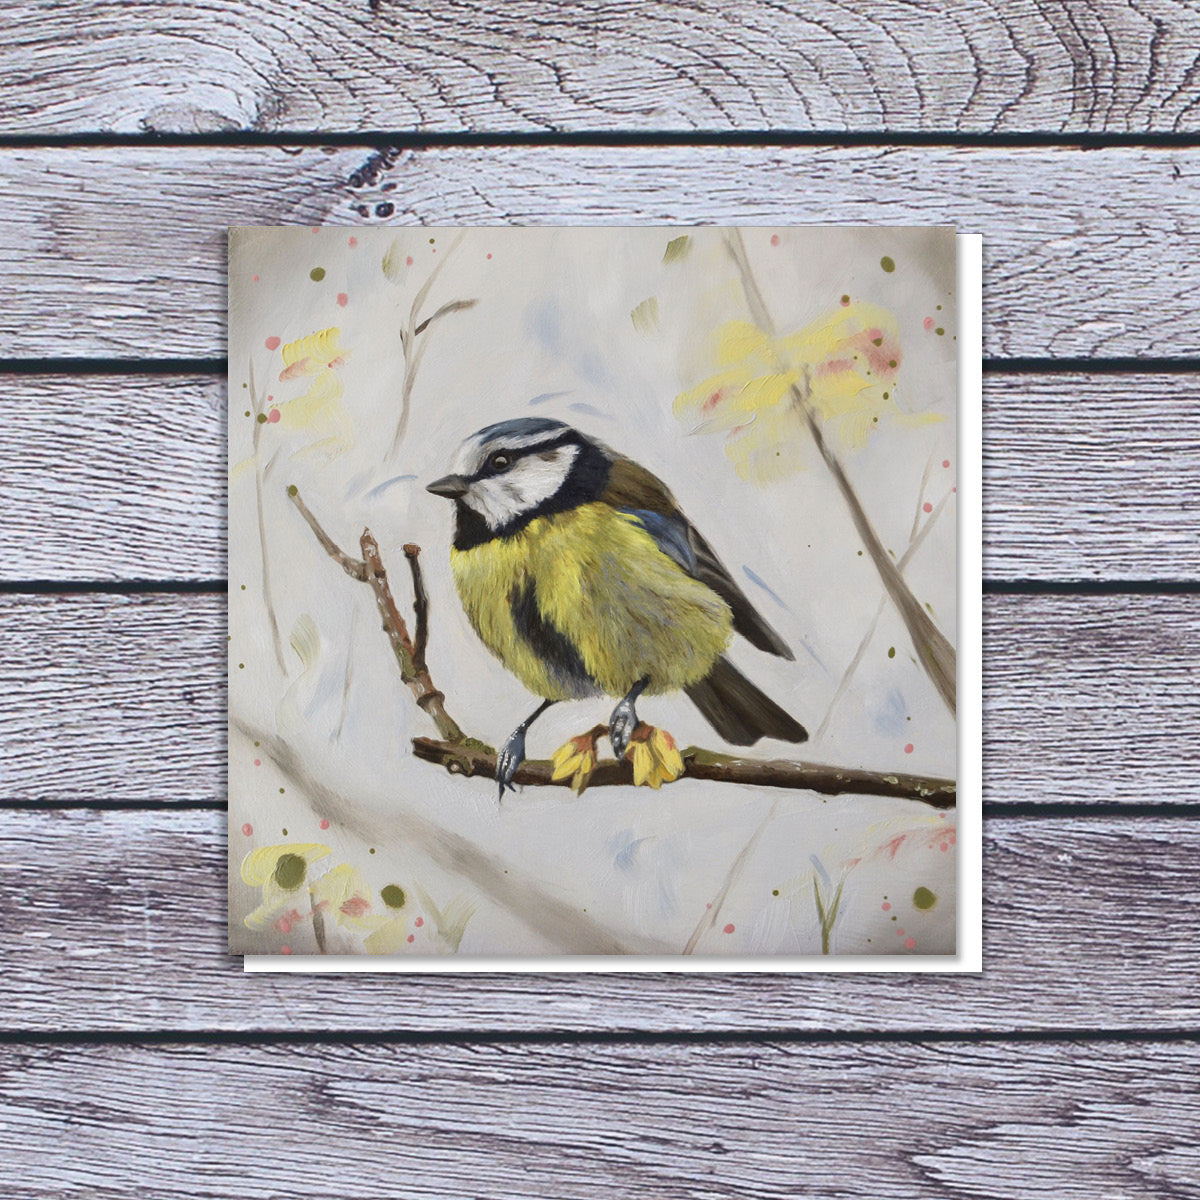 Winter sweet (blue tit) card